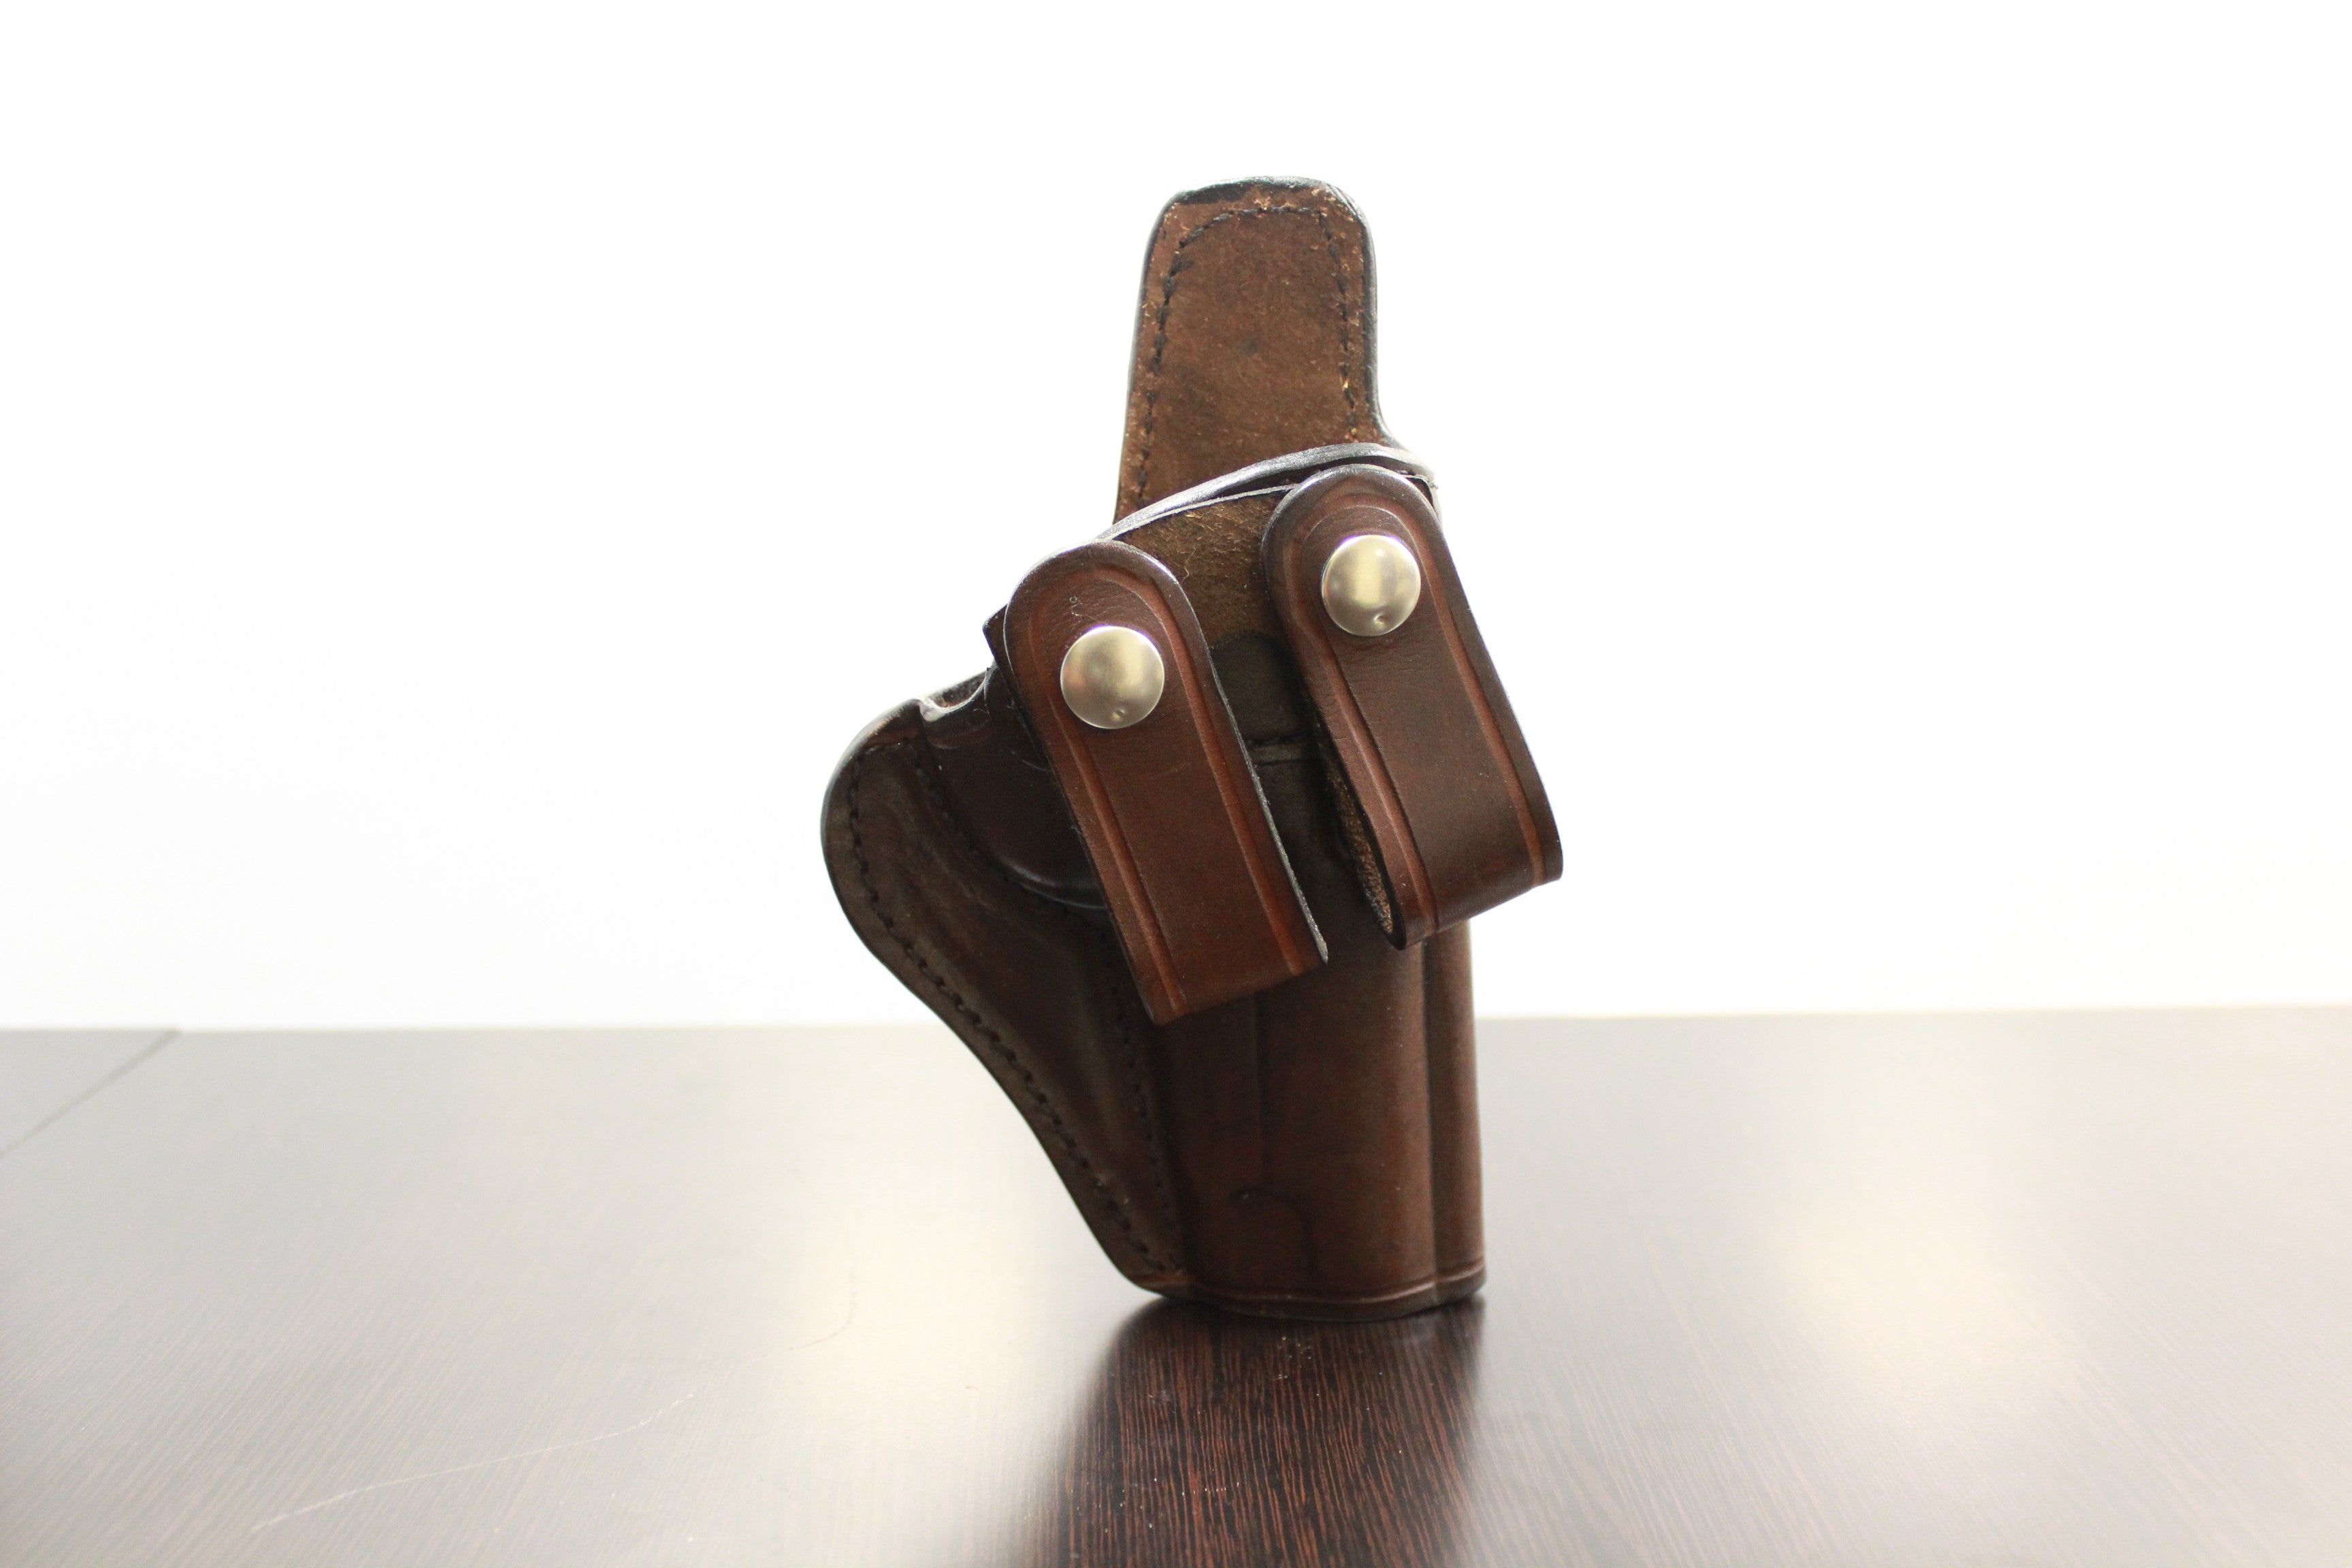 Smith & Wesson 459 TCC Inside Waistband Holster in Brown